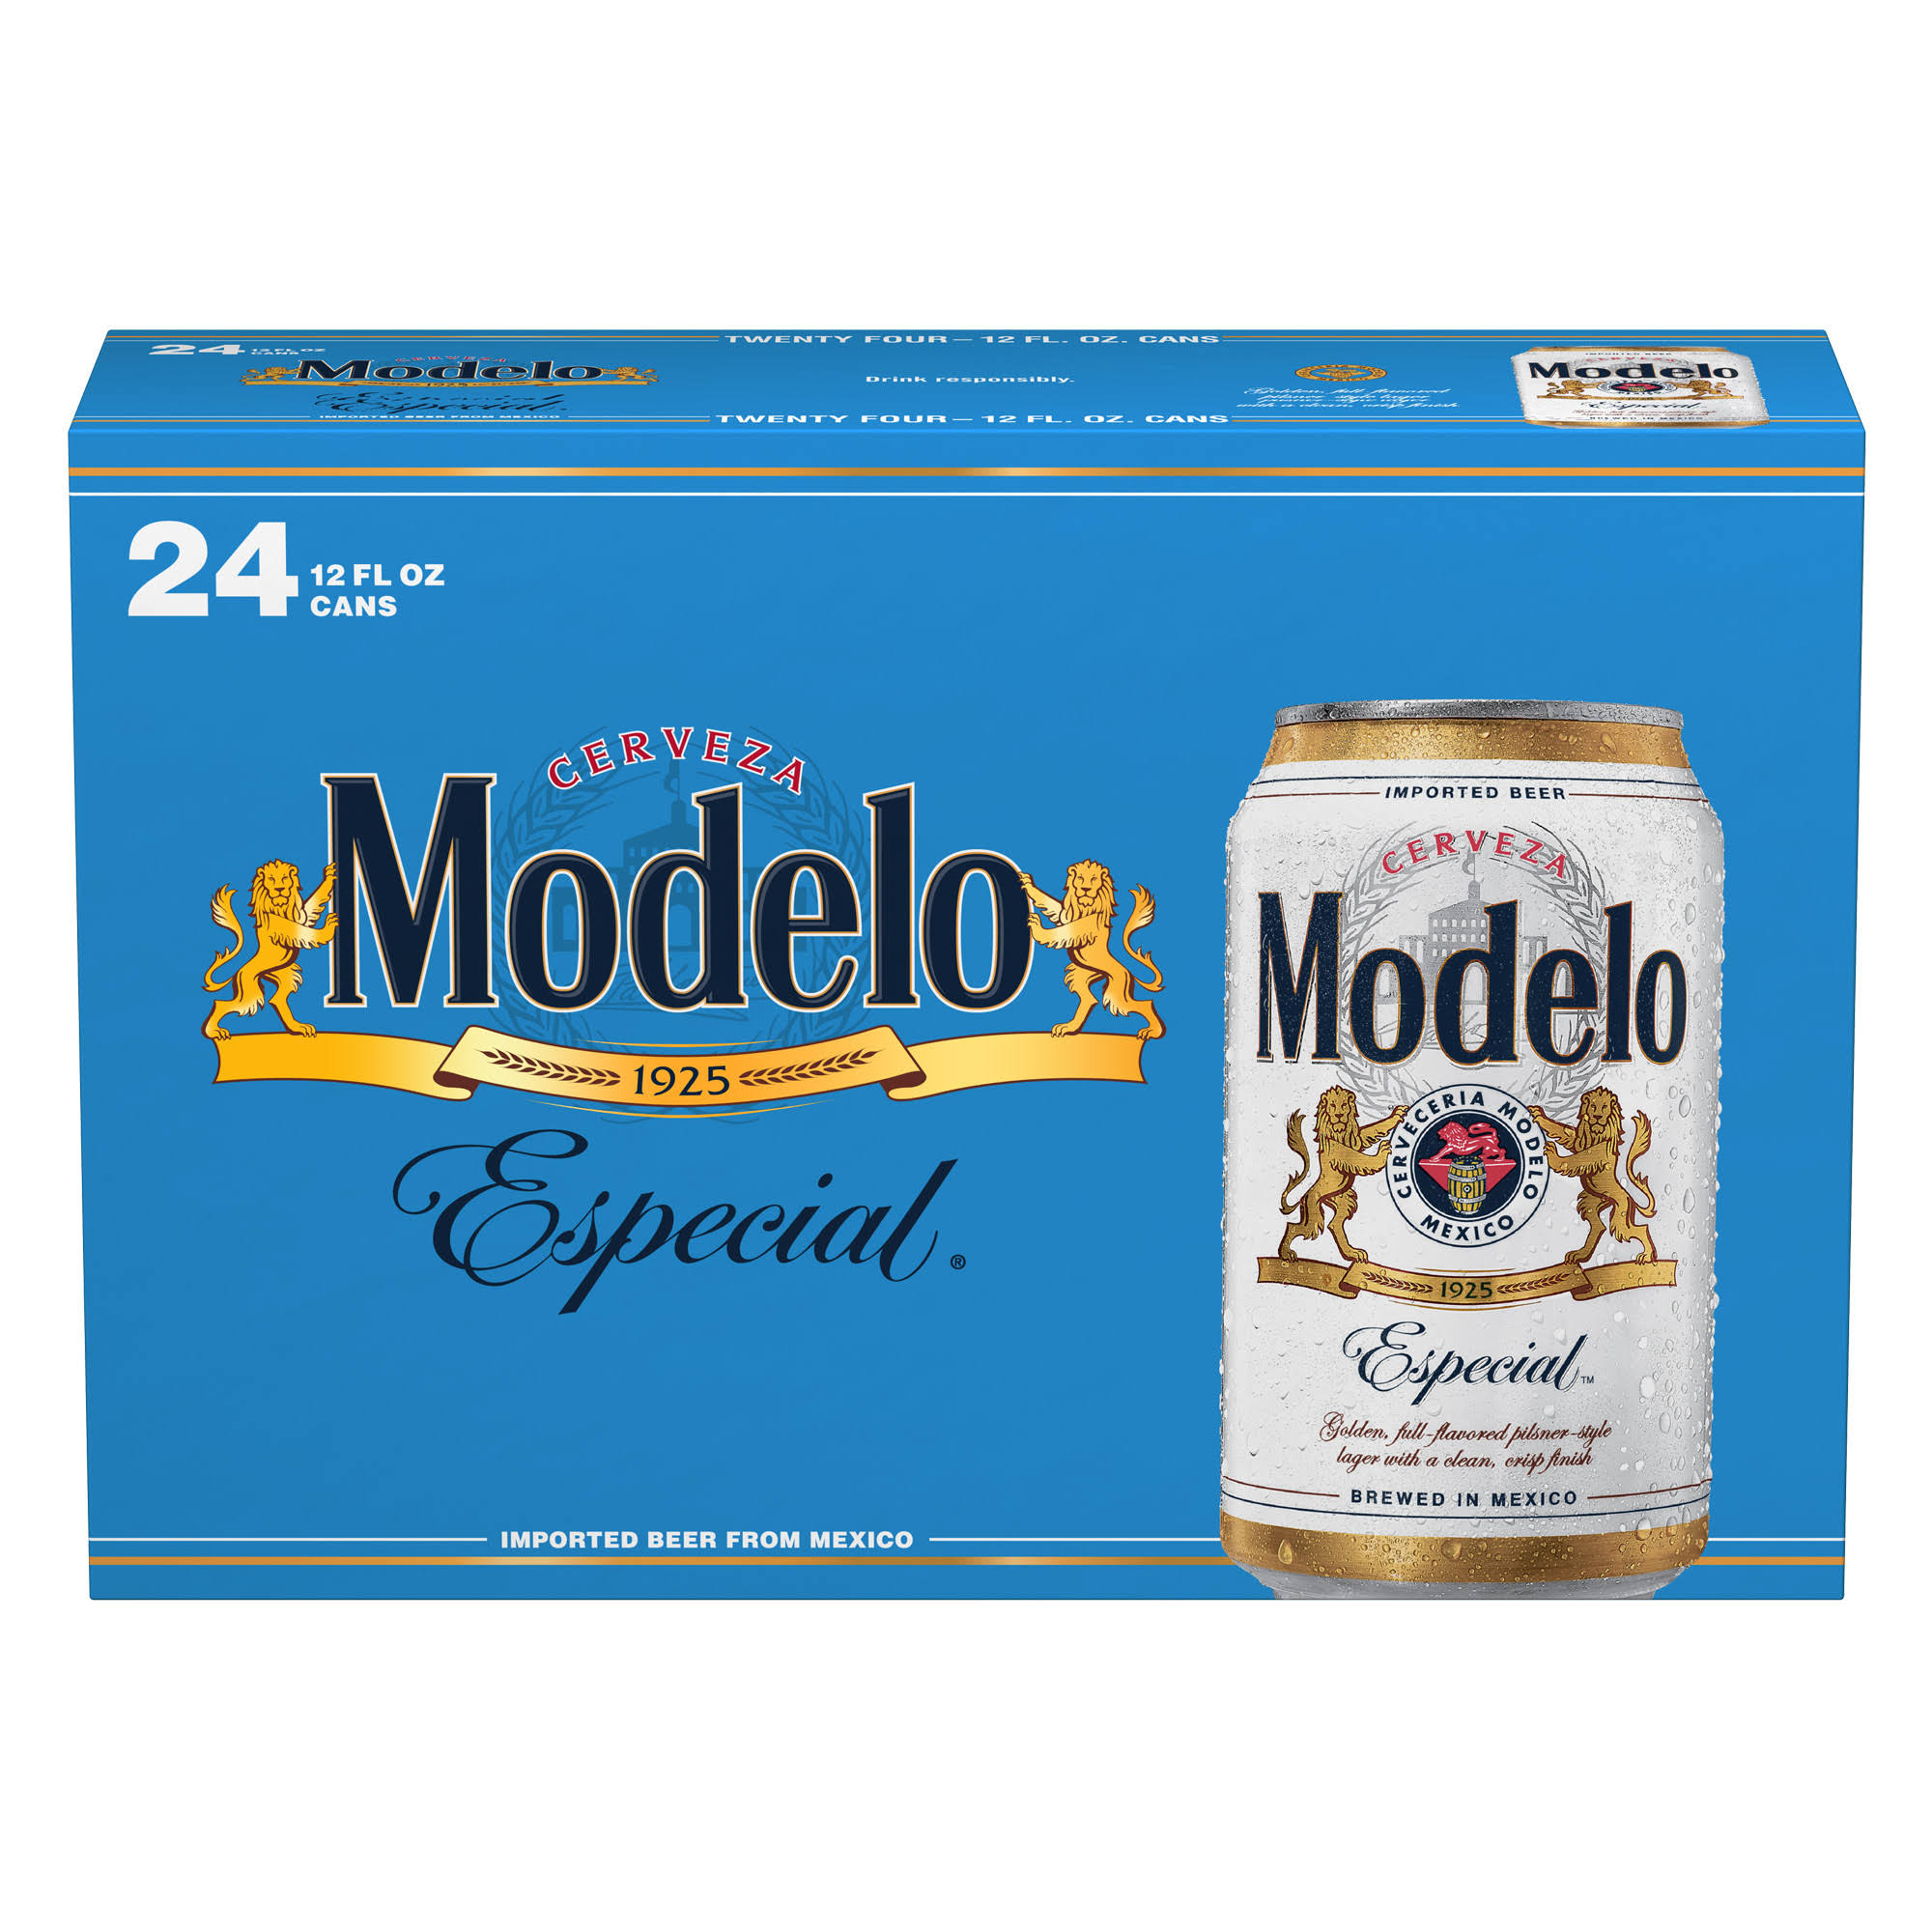 Modelo Especial Beer - 24 pack, 12 fl oz cans